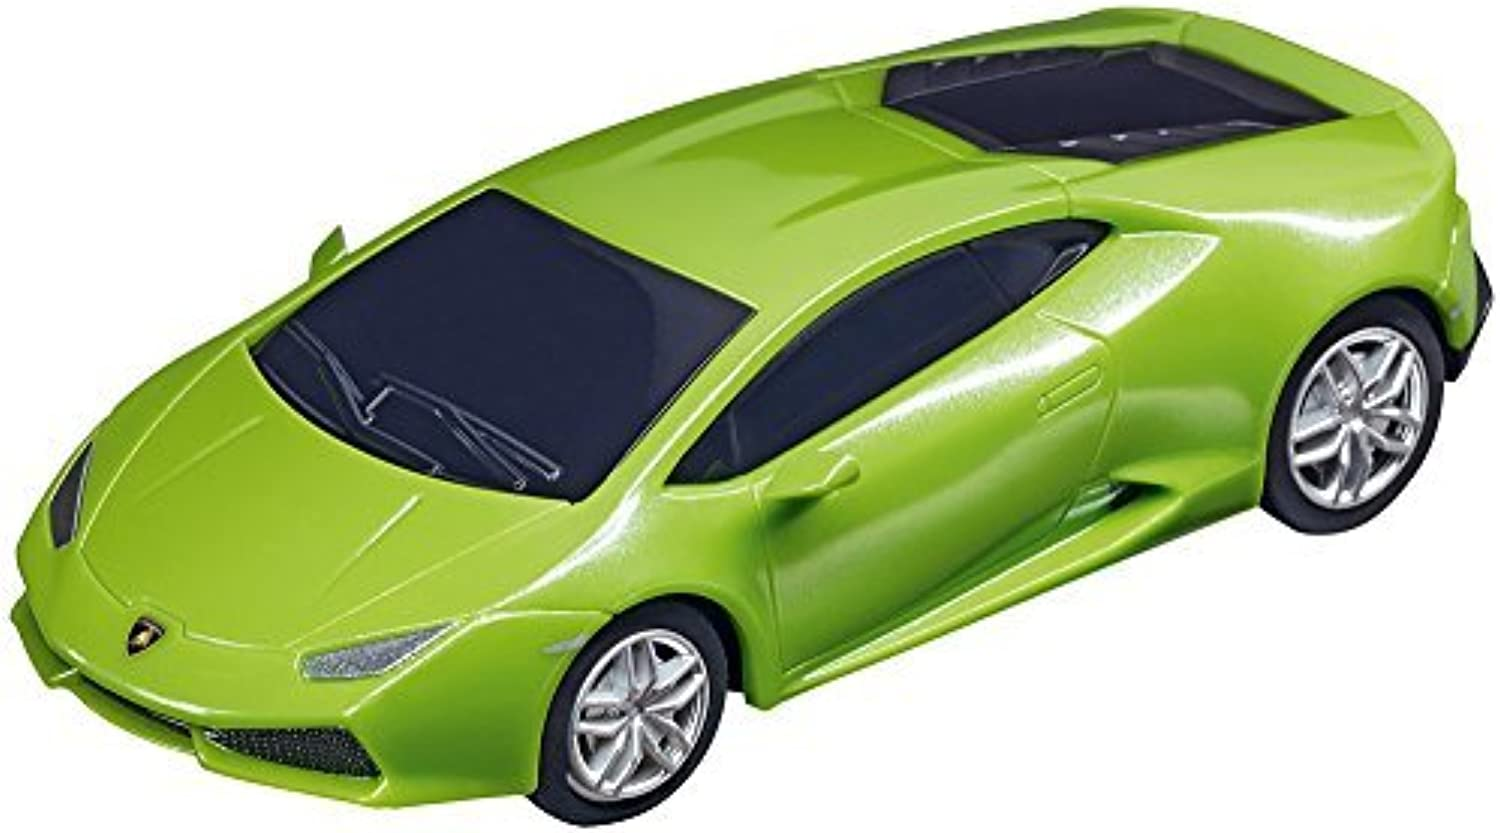 Carrera Go    64029 Lamborghini Huracan Lp610-4 Grn by Carrera USA